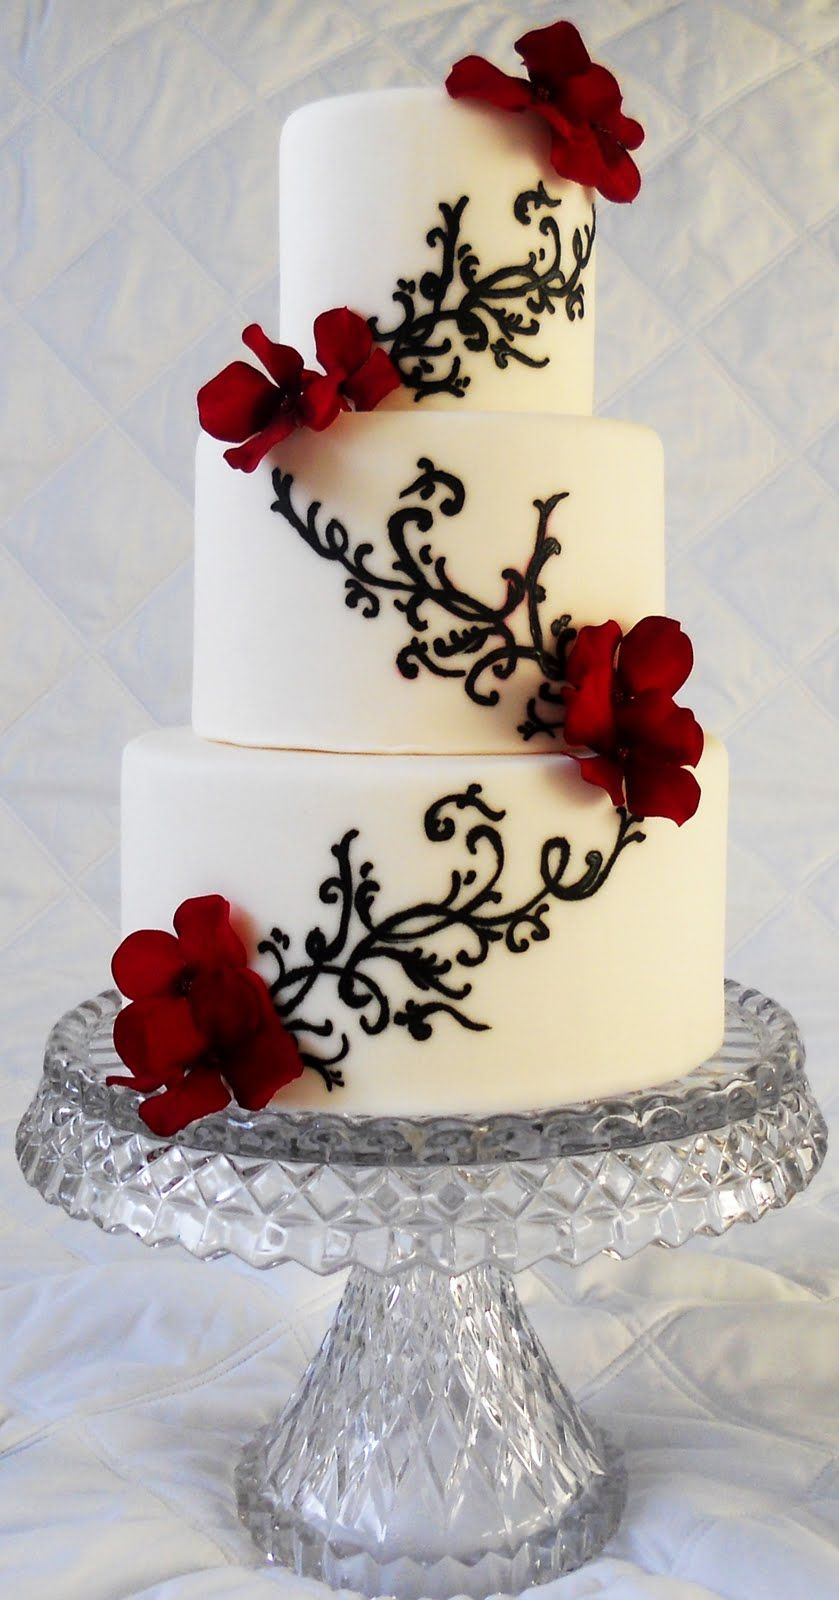 black and white and red wedding cakes | Black+and+white+wedding+cake ...